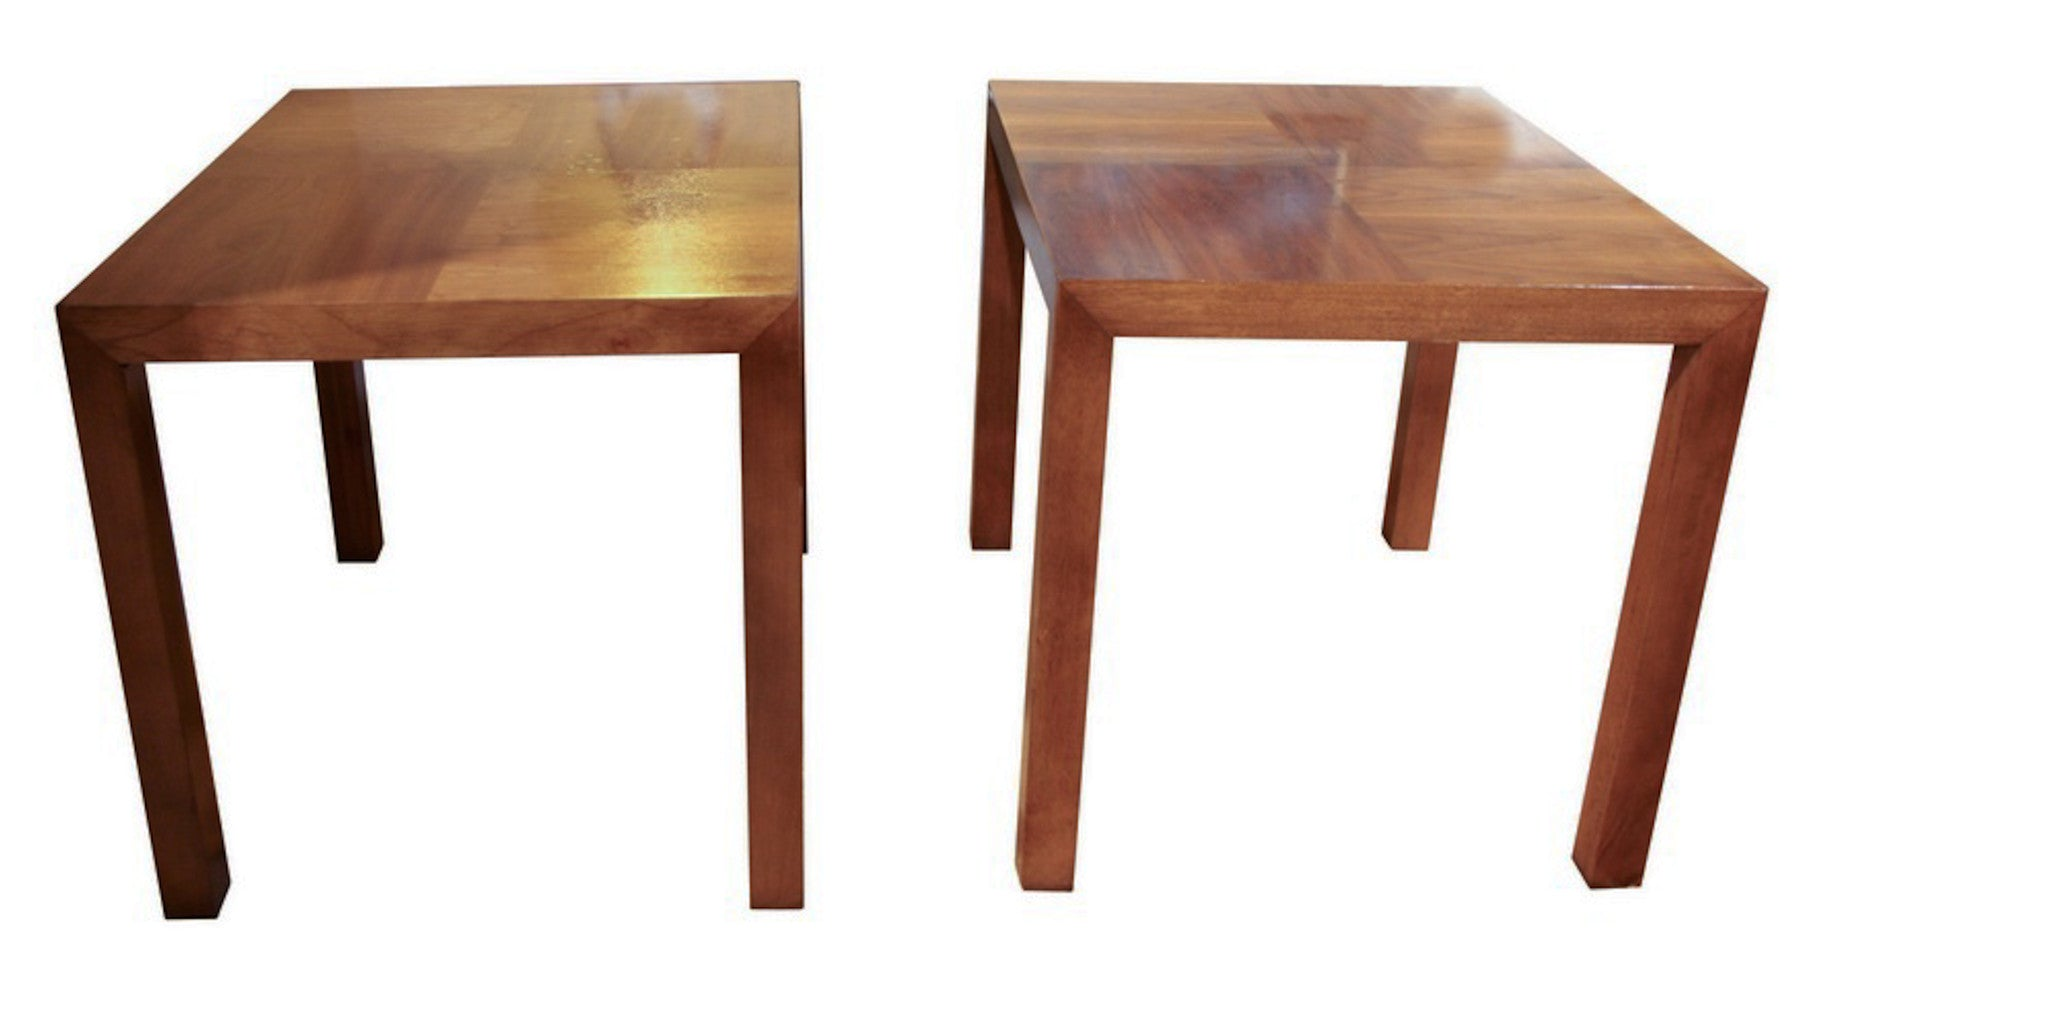 Mid century Lane parsons style side tables